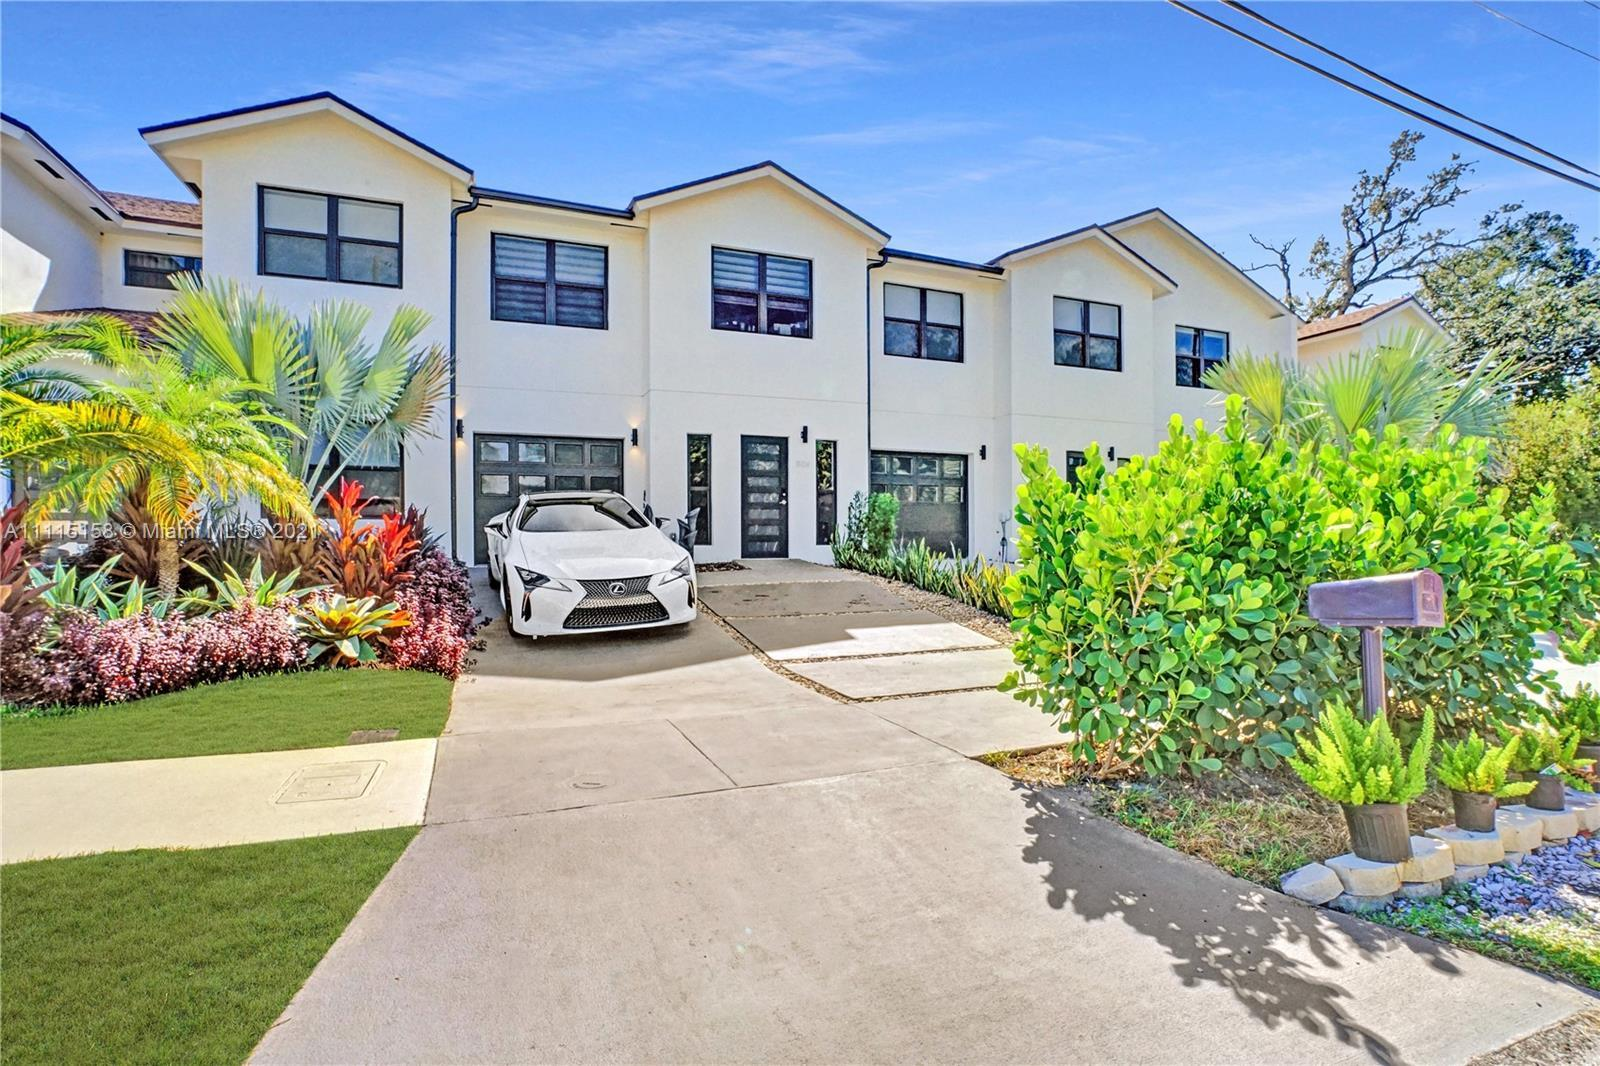 Enjoy peace of mind with modern new 2020 construction! This gorgeous 3 bed, 2.5 bath, 1 car garage h